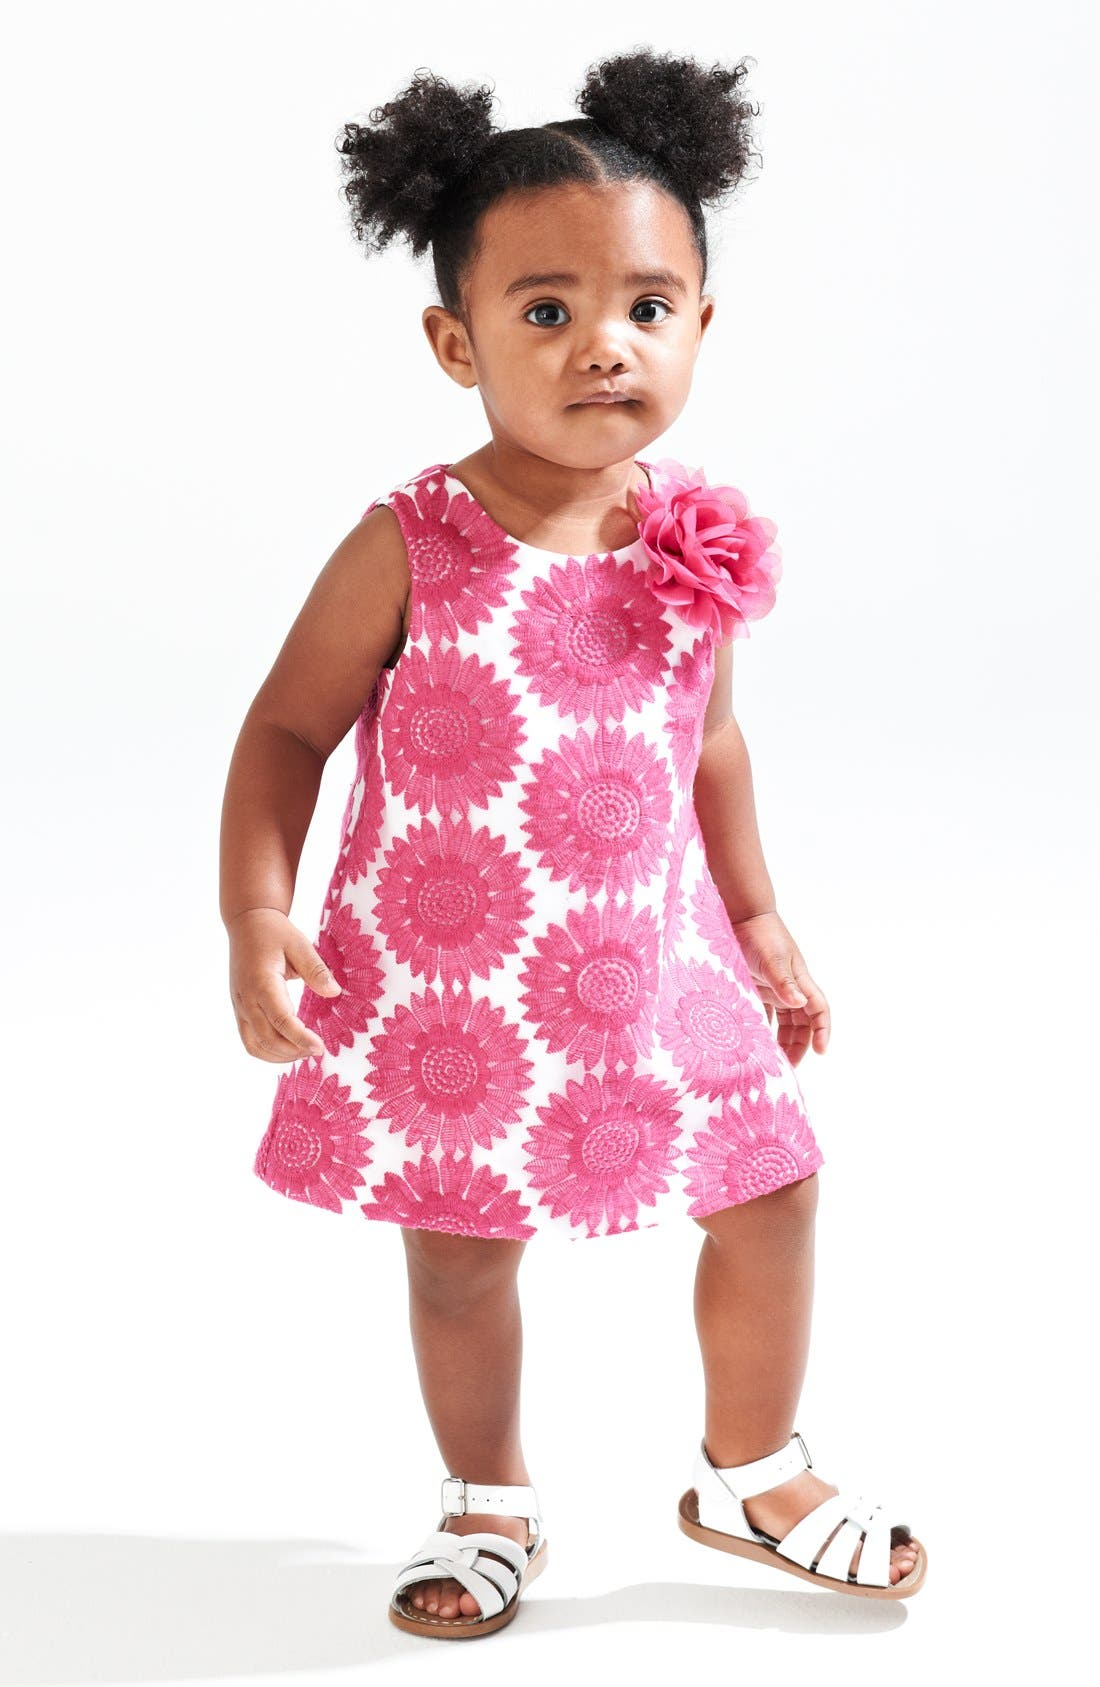 Main Image - Pippa & Julie Embroidered Sleeveless Dress & Hoy Shoe Salt-Water® Sandals (Baby Girls)